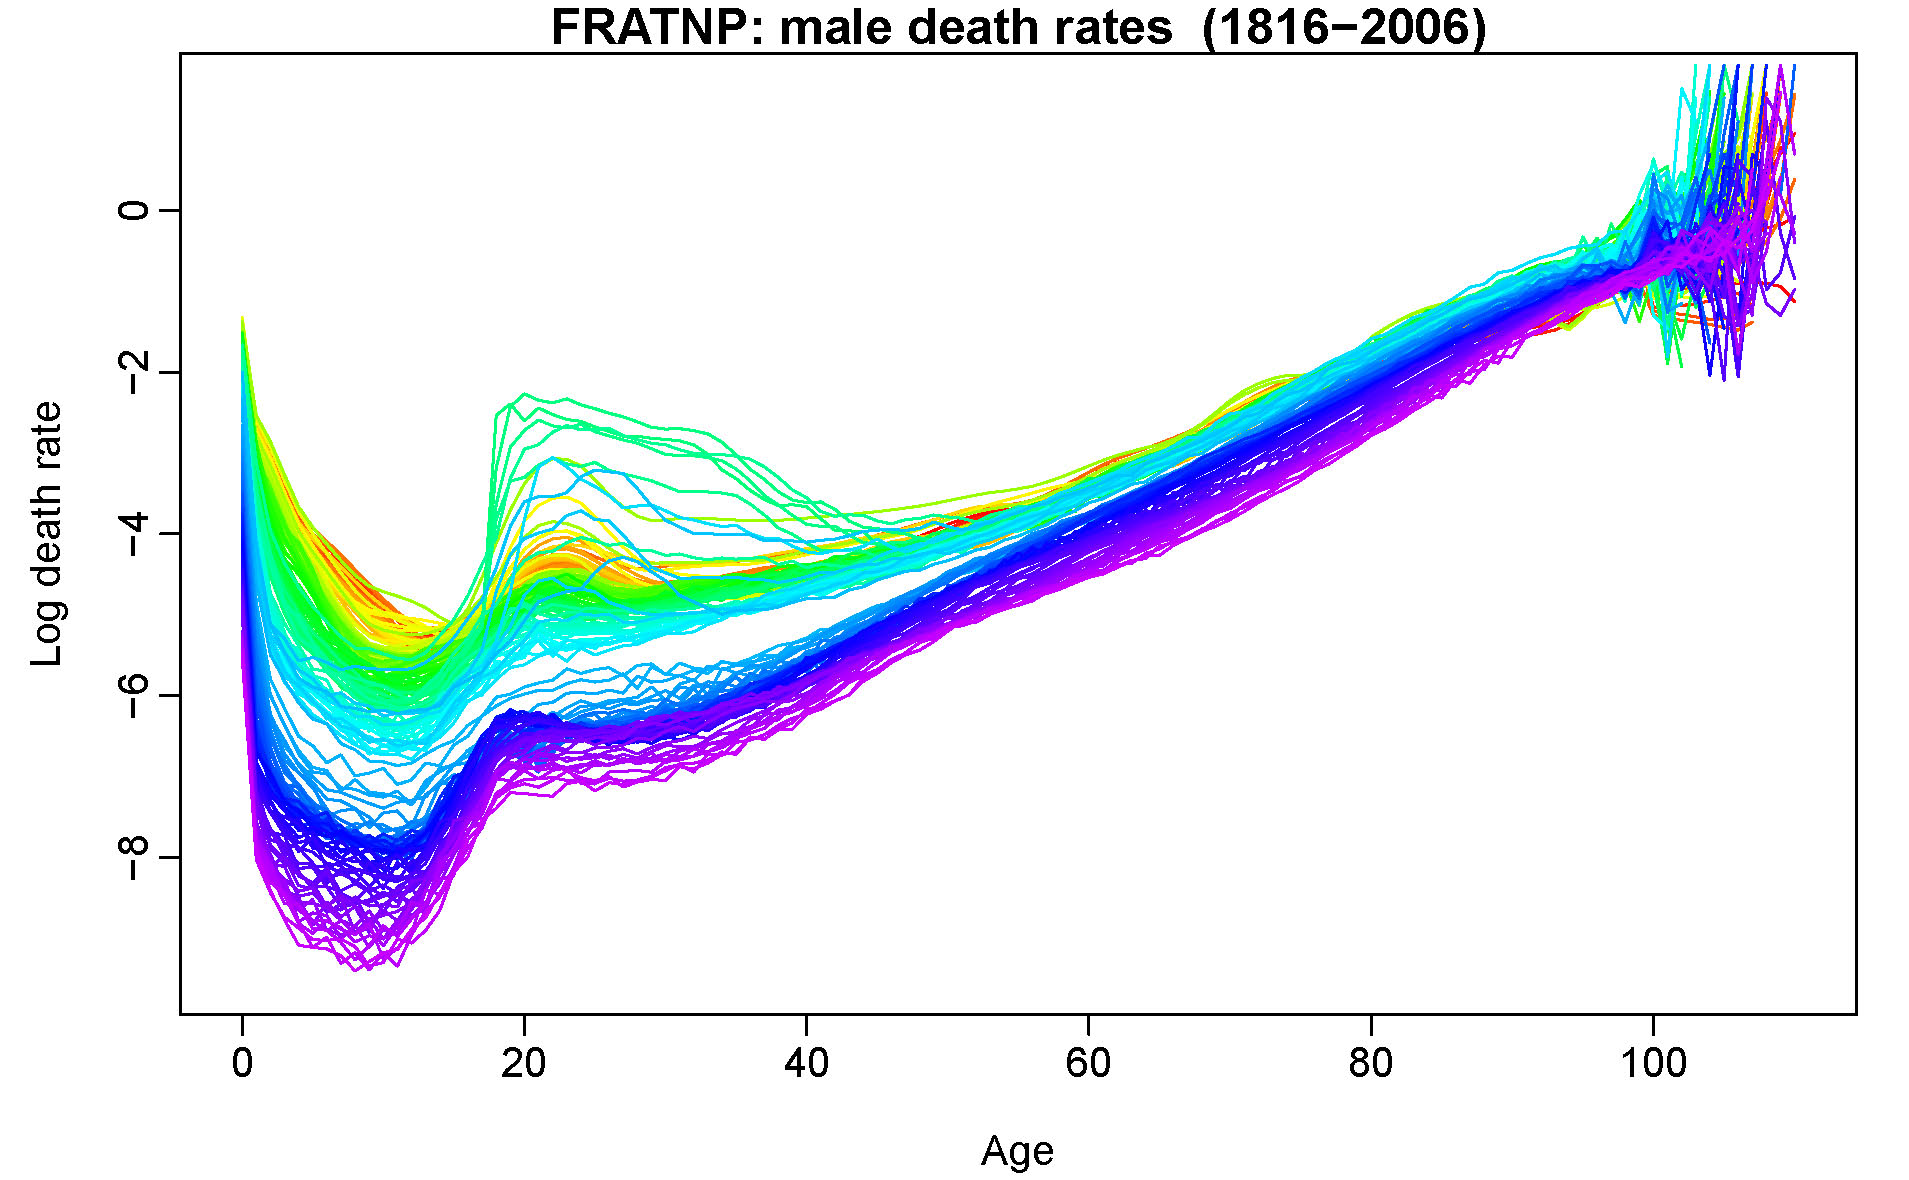 Animated plots in R and LaTeX